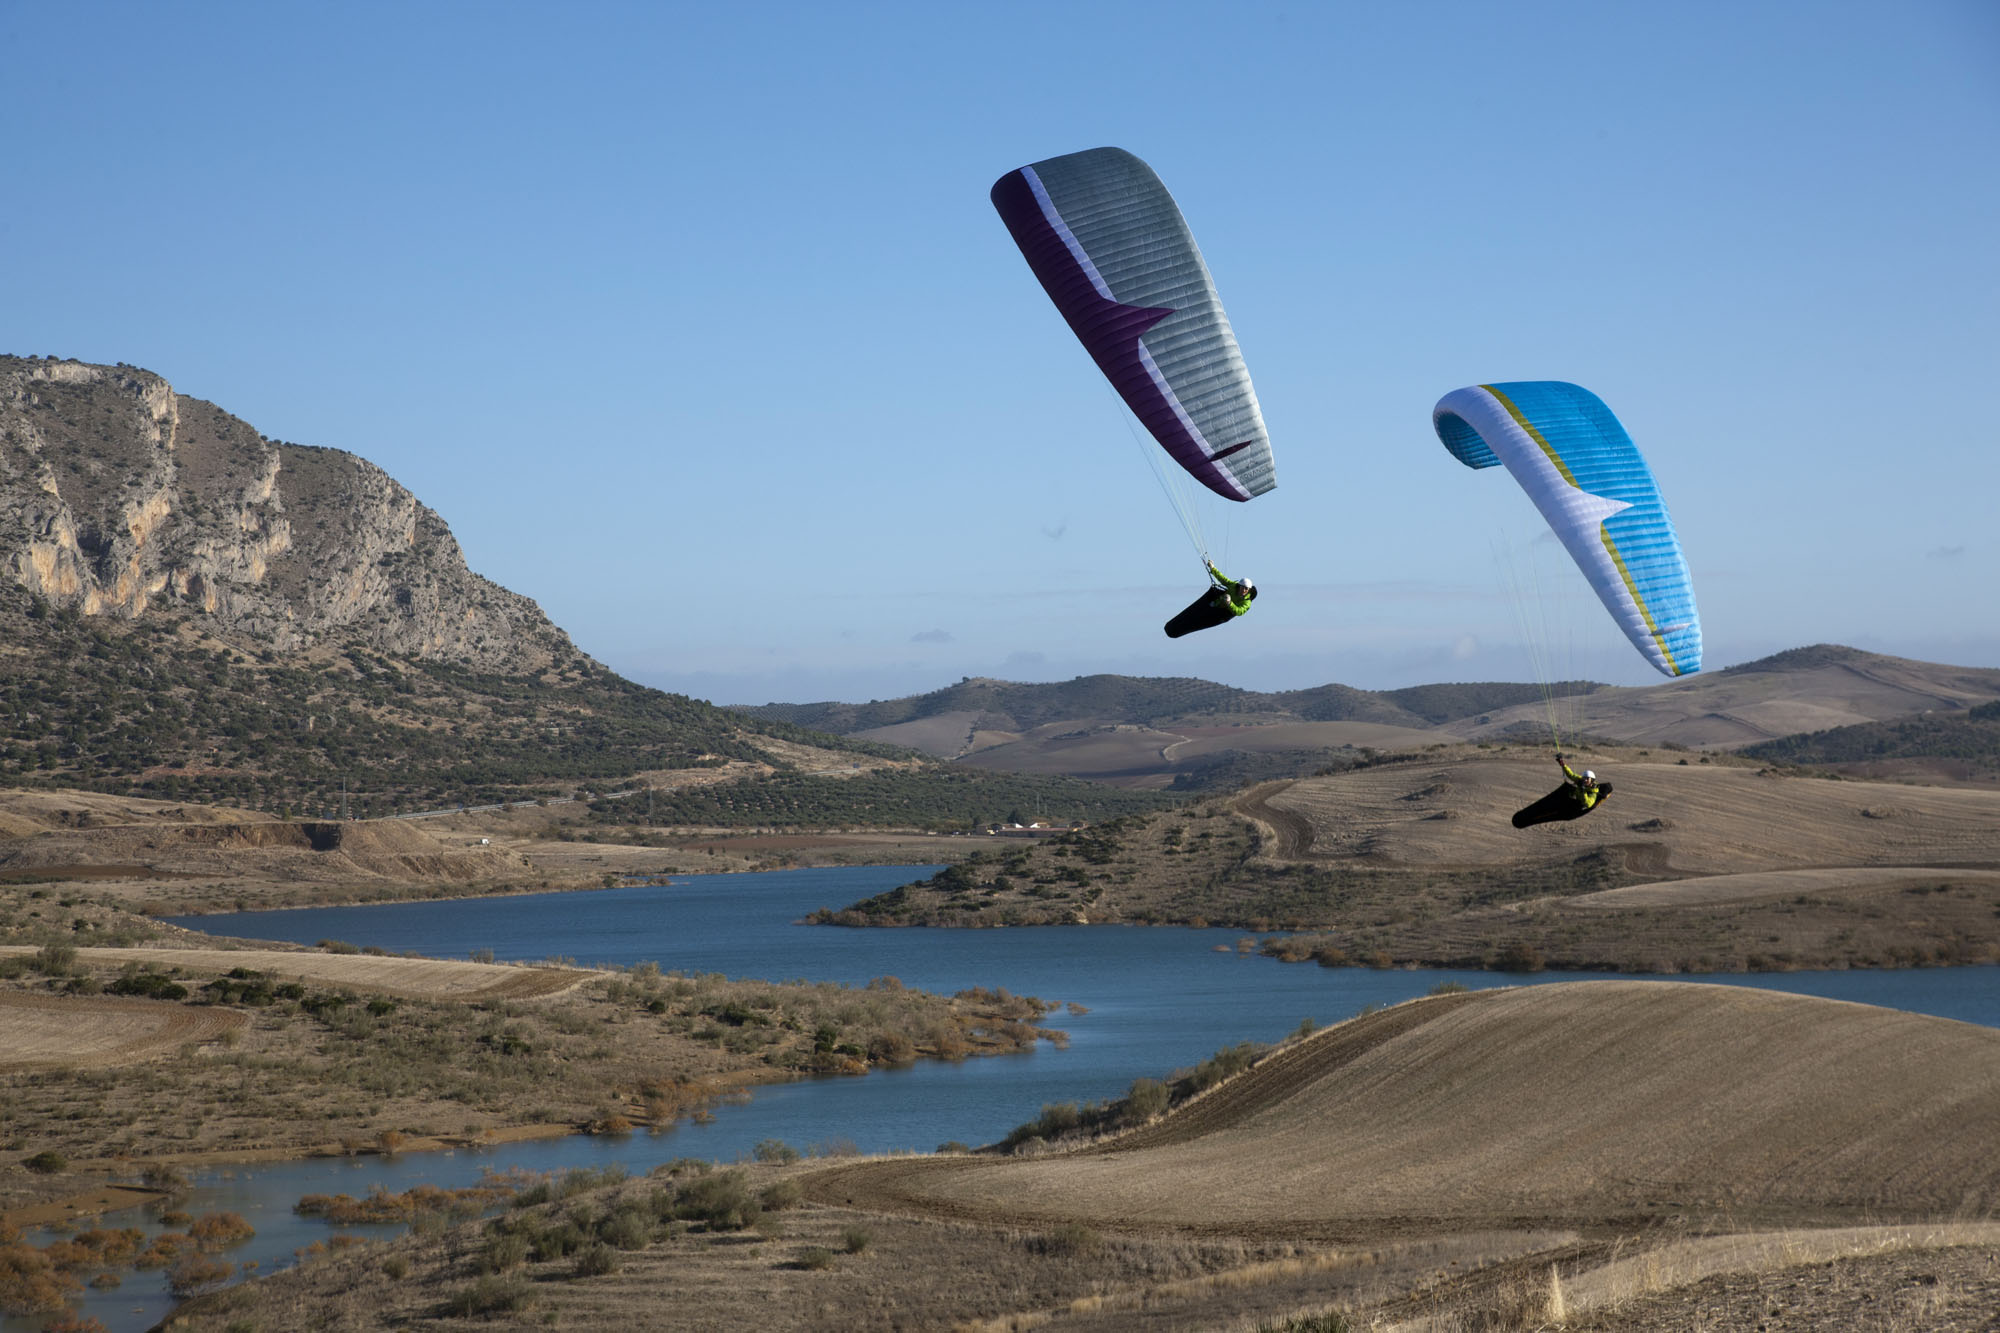 Cross Country XC Course - Infinity Paragliding 6